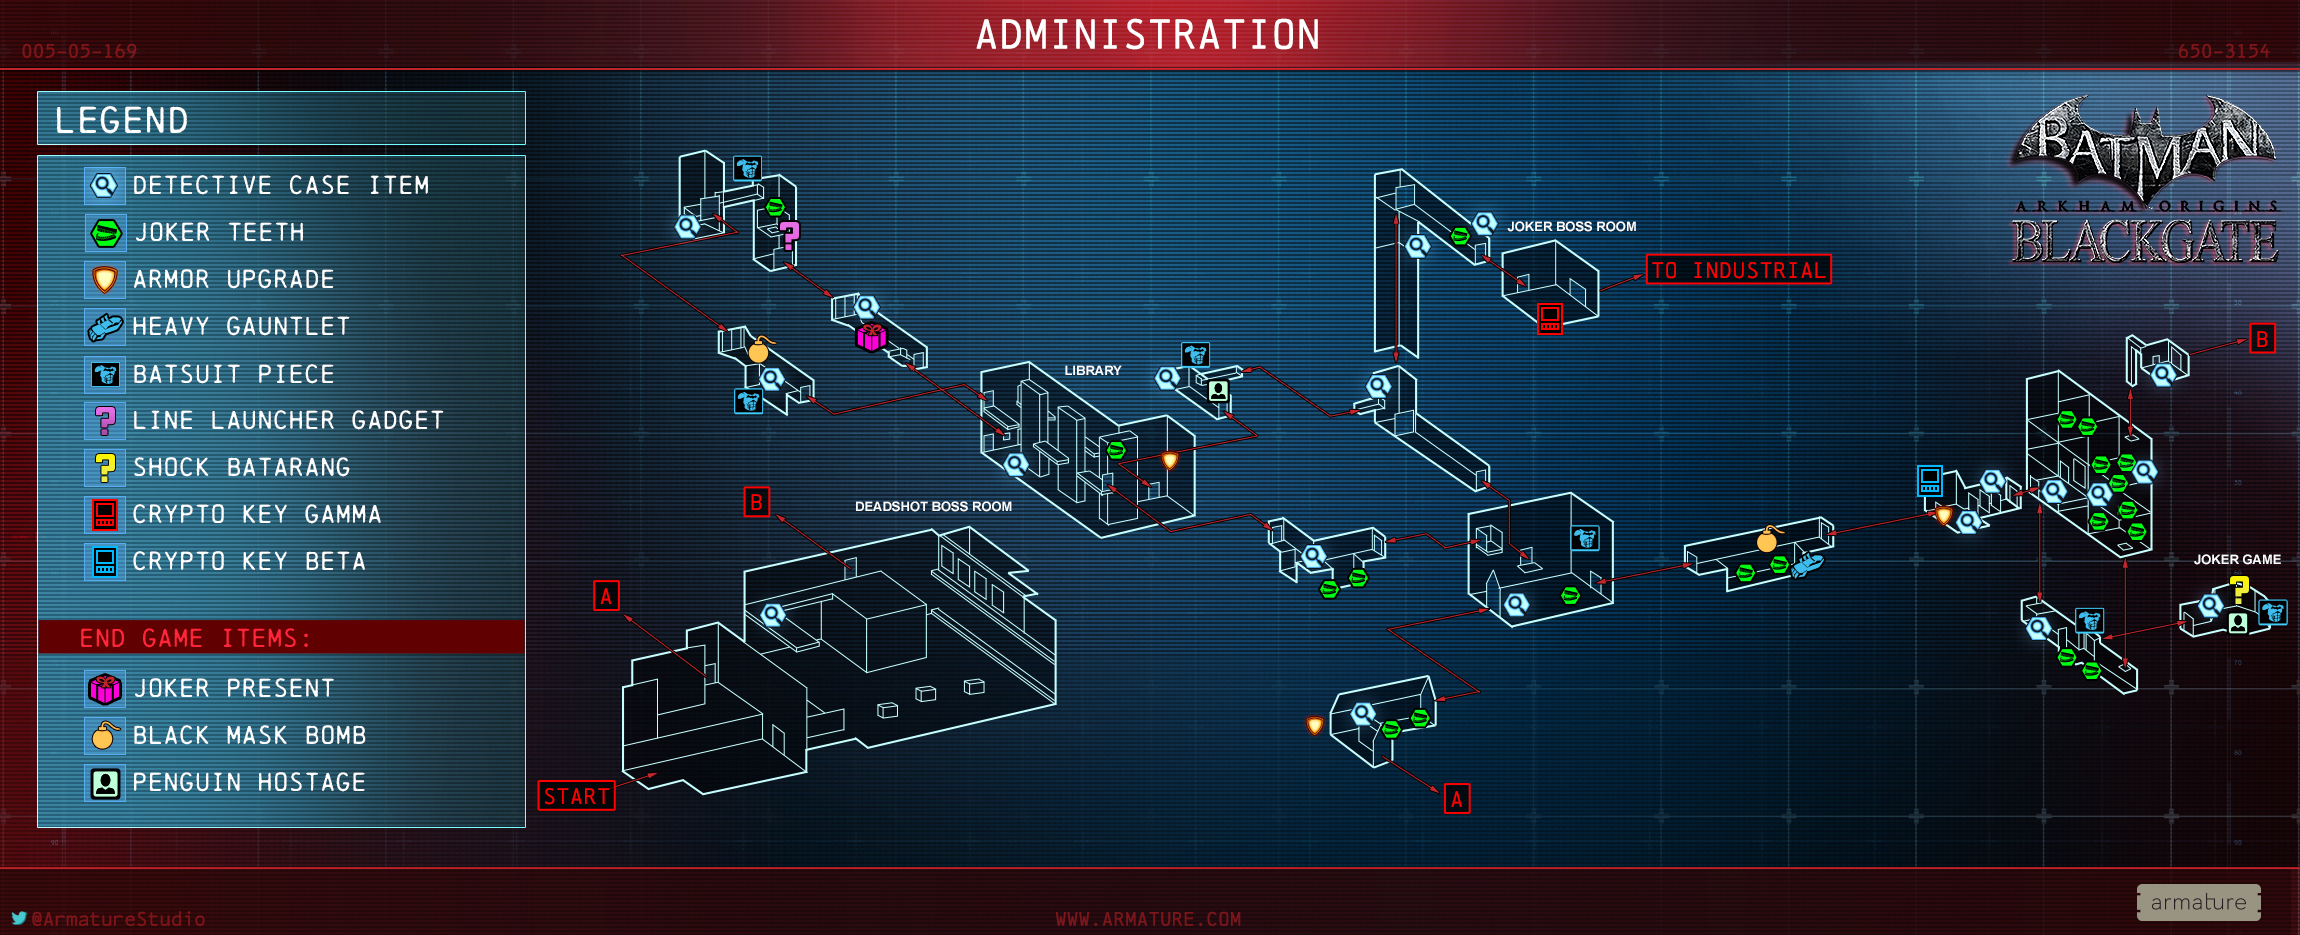 Steam Community Guide Detailed Blackgate Map Cell Diagram Image Maps